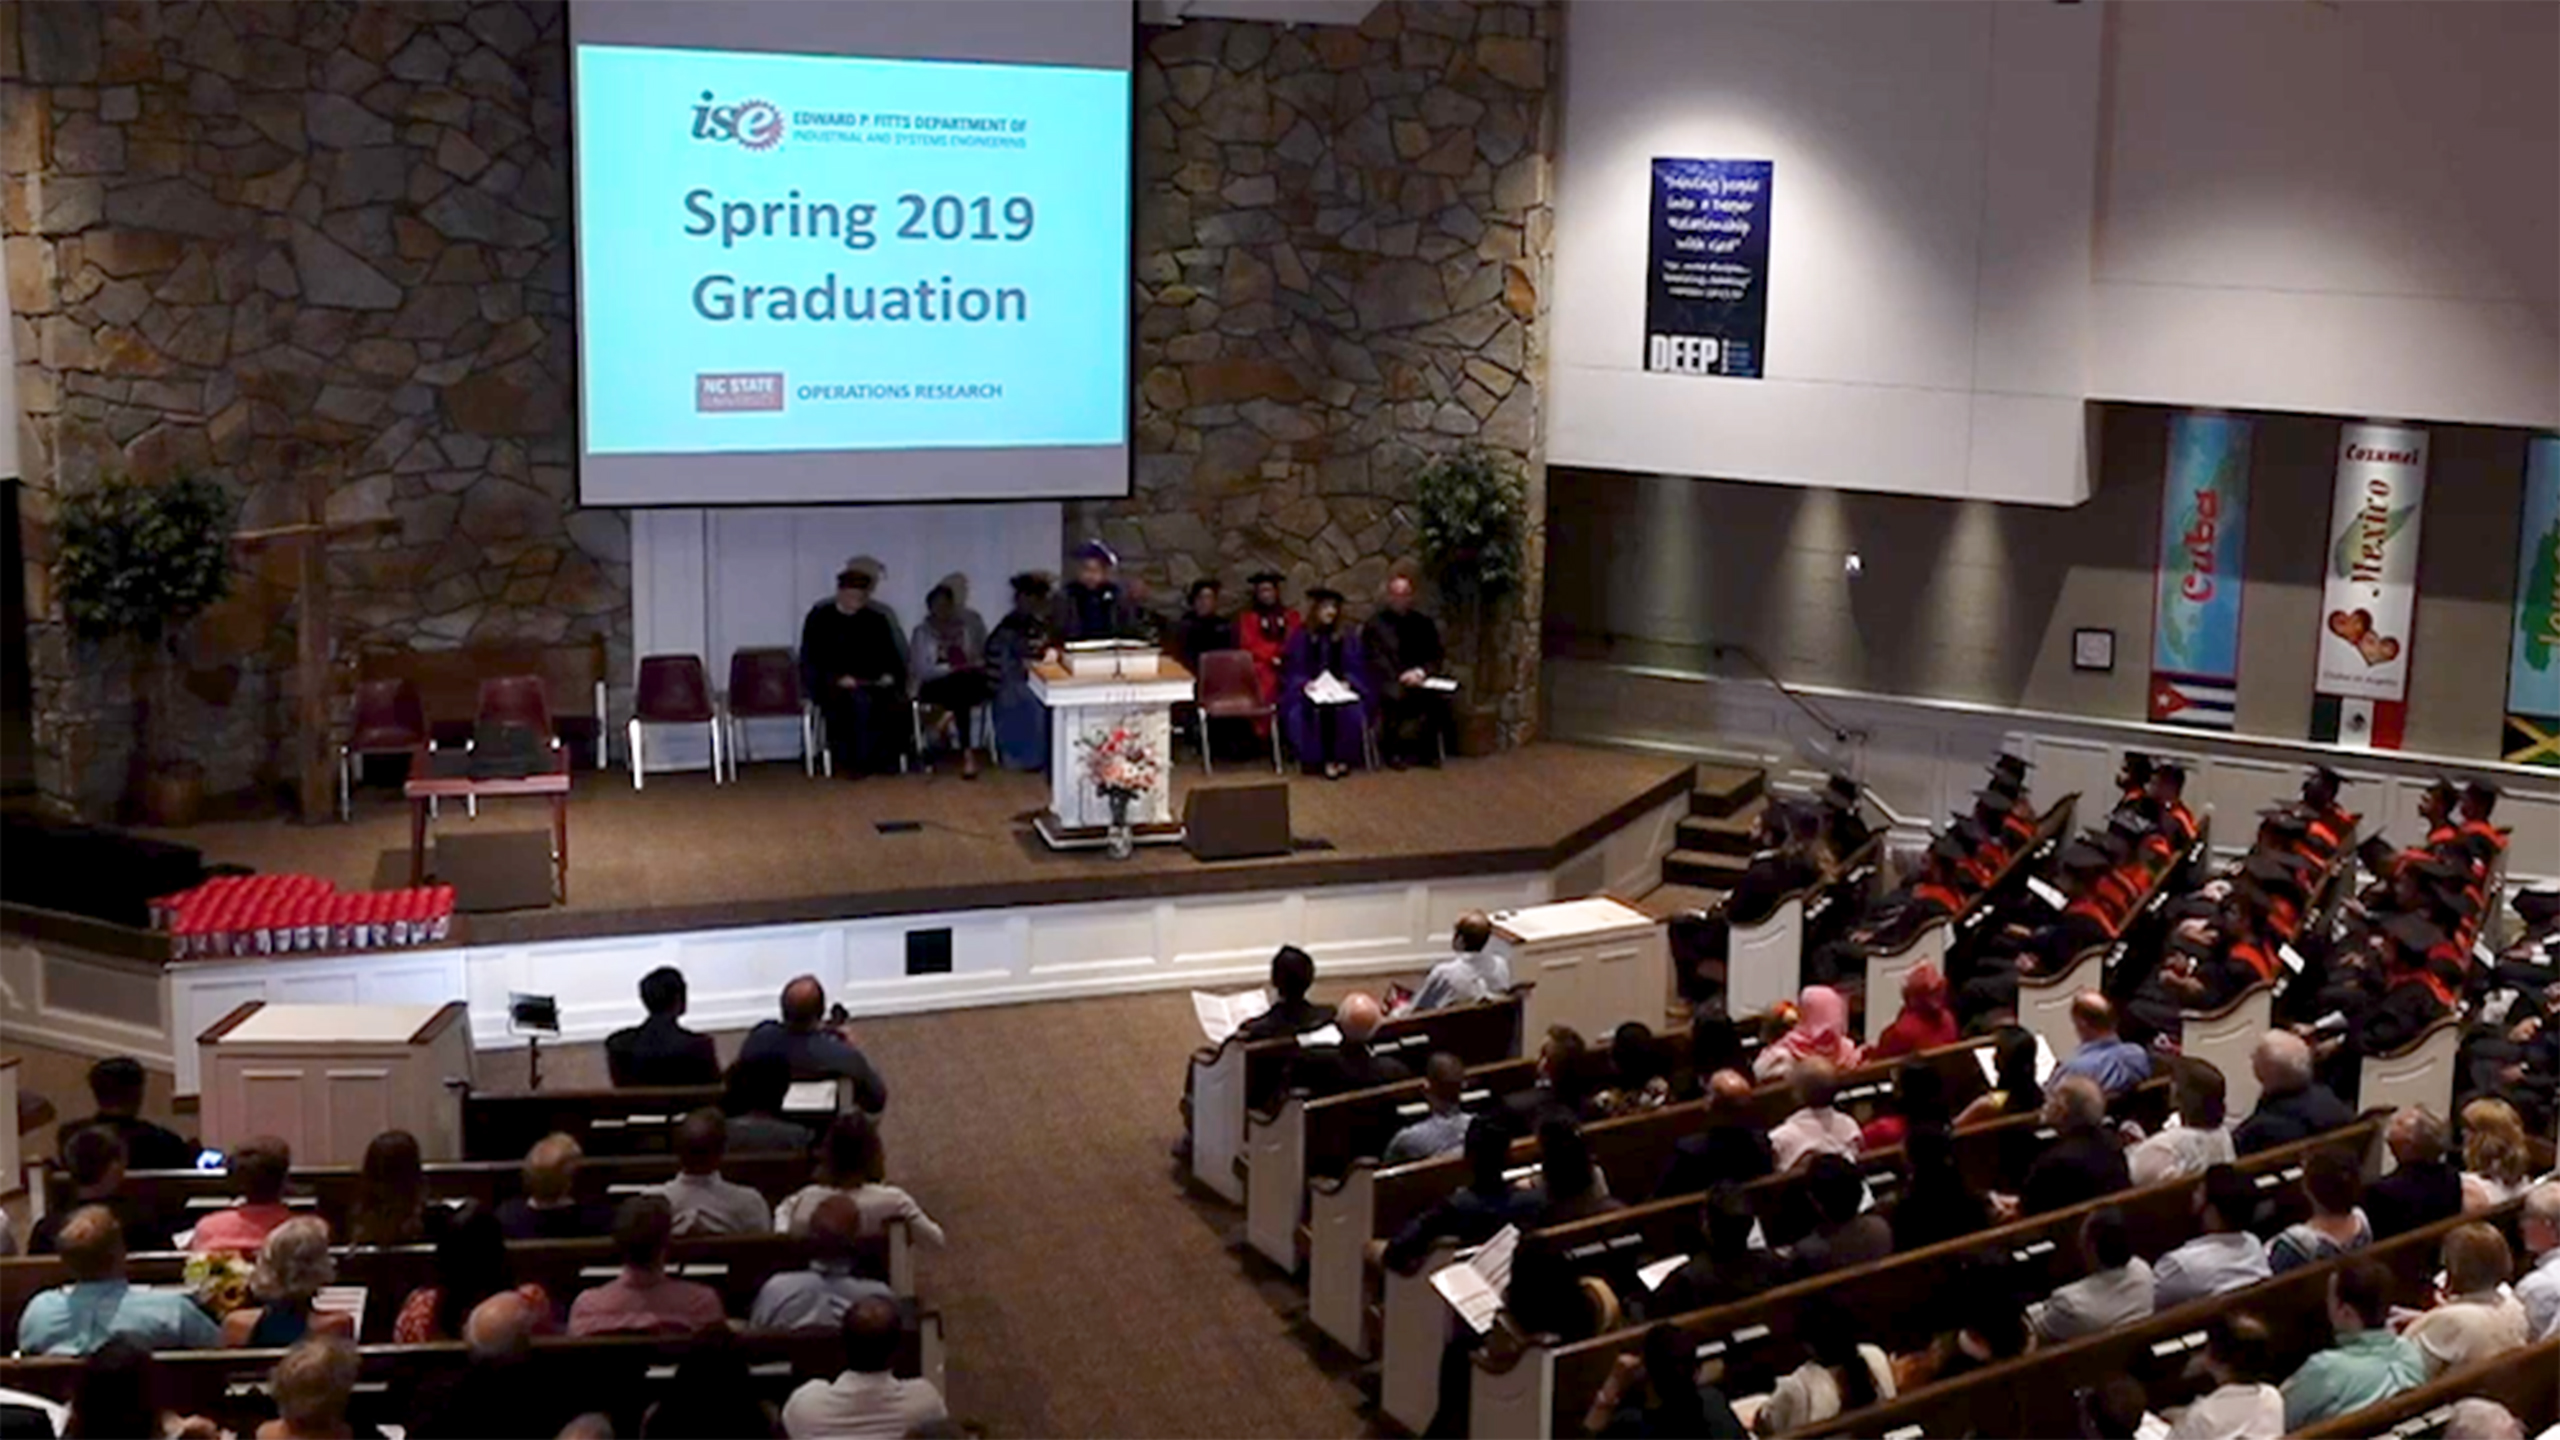 Spring 2019 Graduation Ceremony